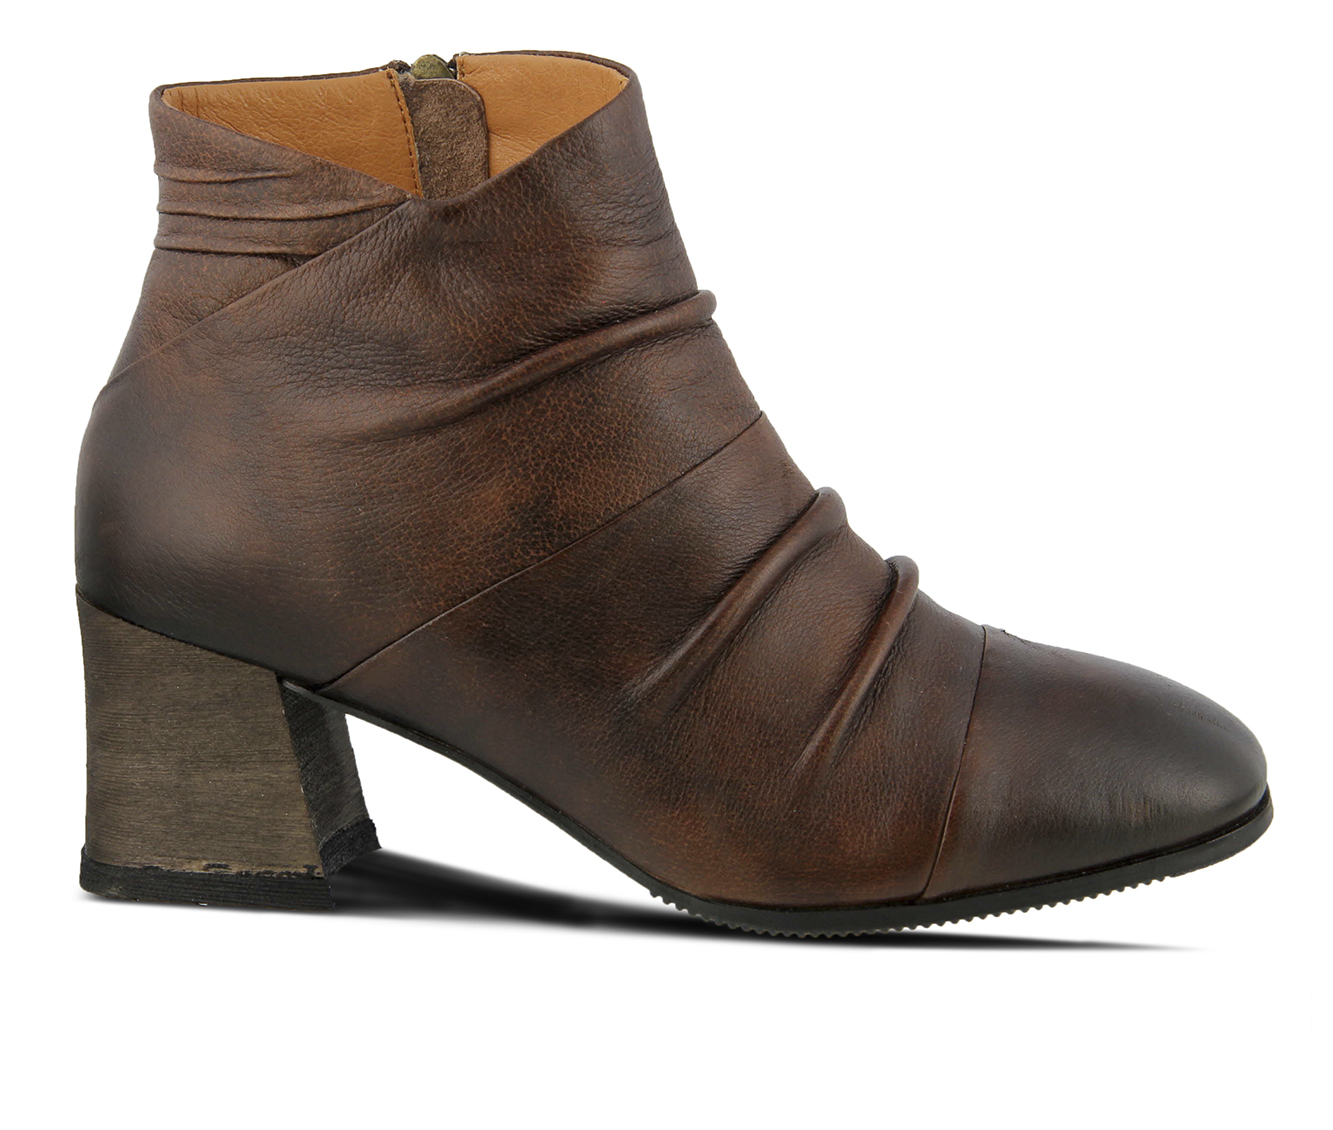 L'Artiste Melani Women's Boots (Brown Leather)